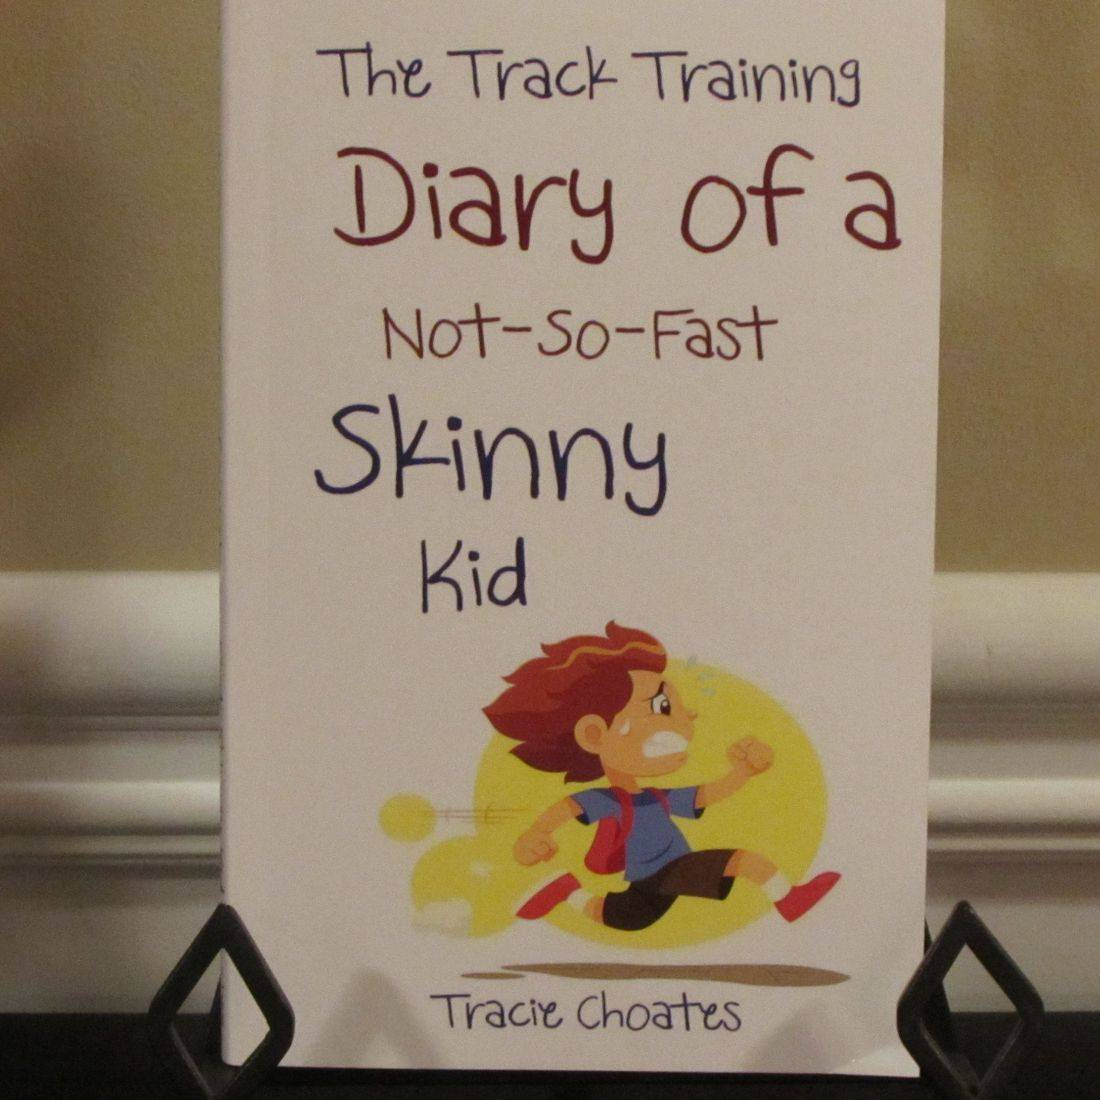 Skinny Kid, #MiddleSchoolbooks, #YA Author, Diary of a, #30K FacebookFollowers,#laughoutloud, Diary, Tracie Choates books, #NewFunnyBooks, #Chiildren'sBooks, #MiddleSchool,#JackVandergriff,#NotsoPopular,#SkinnyKid,#Funnybooks2019, #TracieChoates,#Children'sBooks